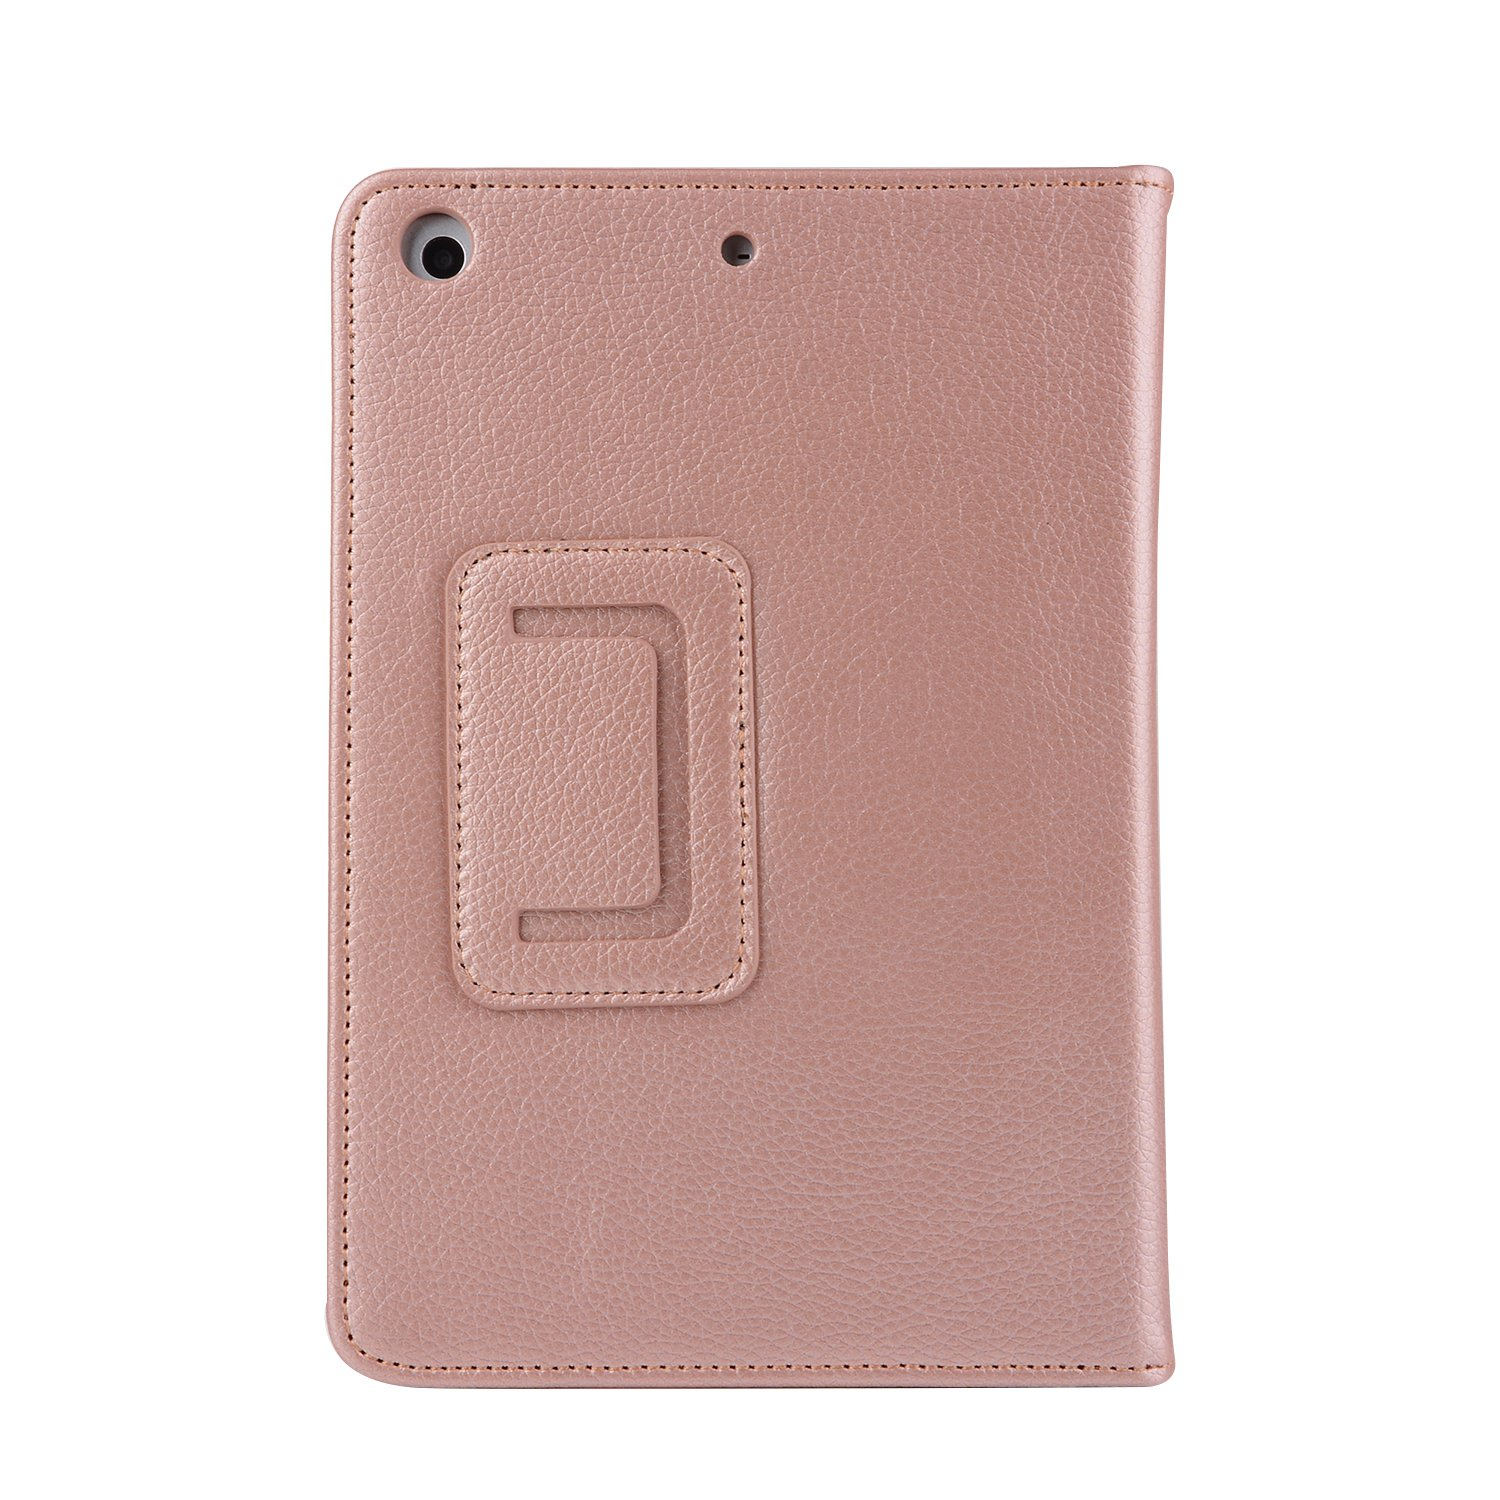 Samsung Galaxy Tab A 10.1 Case,Magnetic PU Leather with Stand&Auto Sleep/Wake Function Case for Samsung Galaxy Tab A 10.1'' (SM-T580 / T585, 2016 Release) - Rose Gold